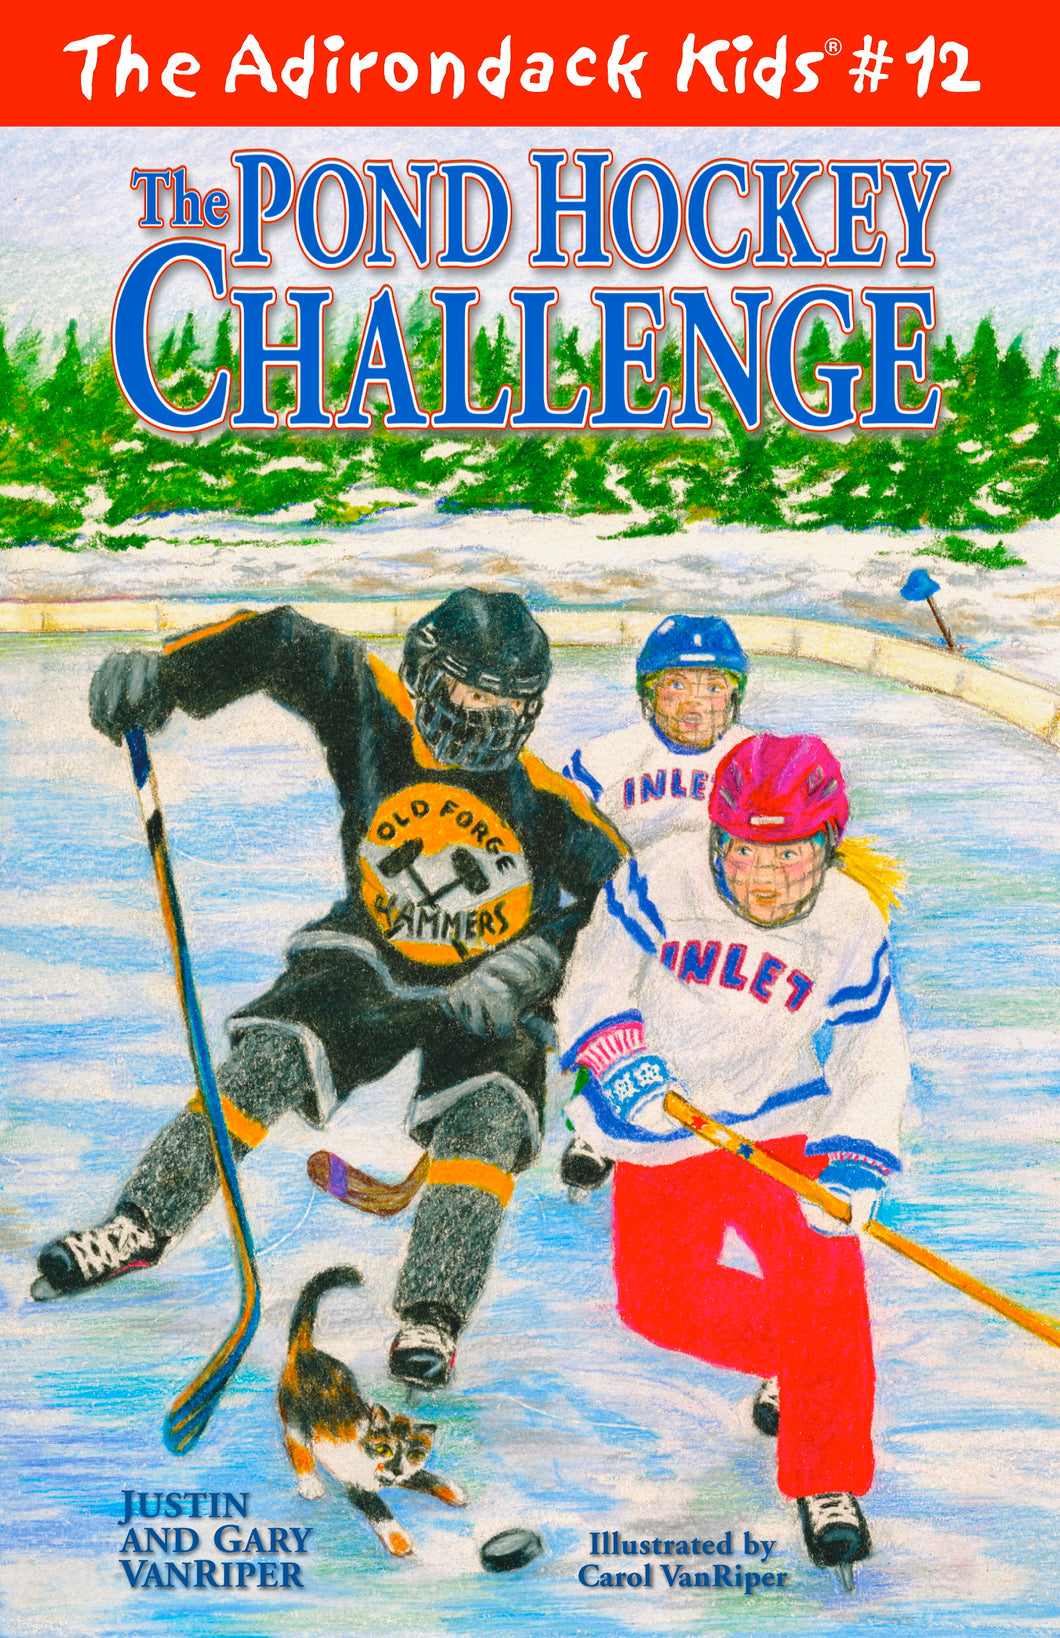 The Adirondack Kids® #12: The Pond Hockey Challenge